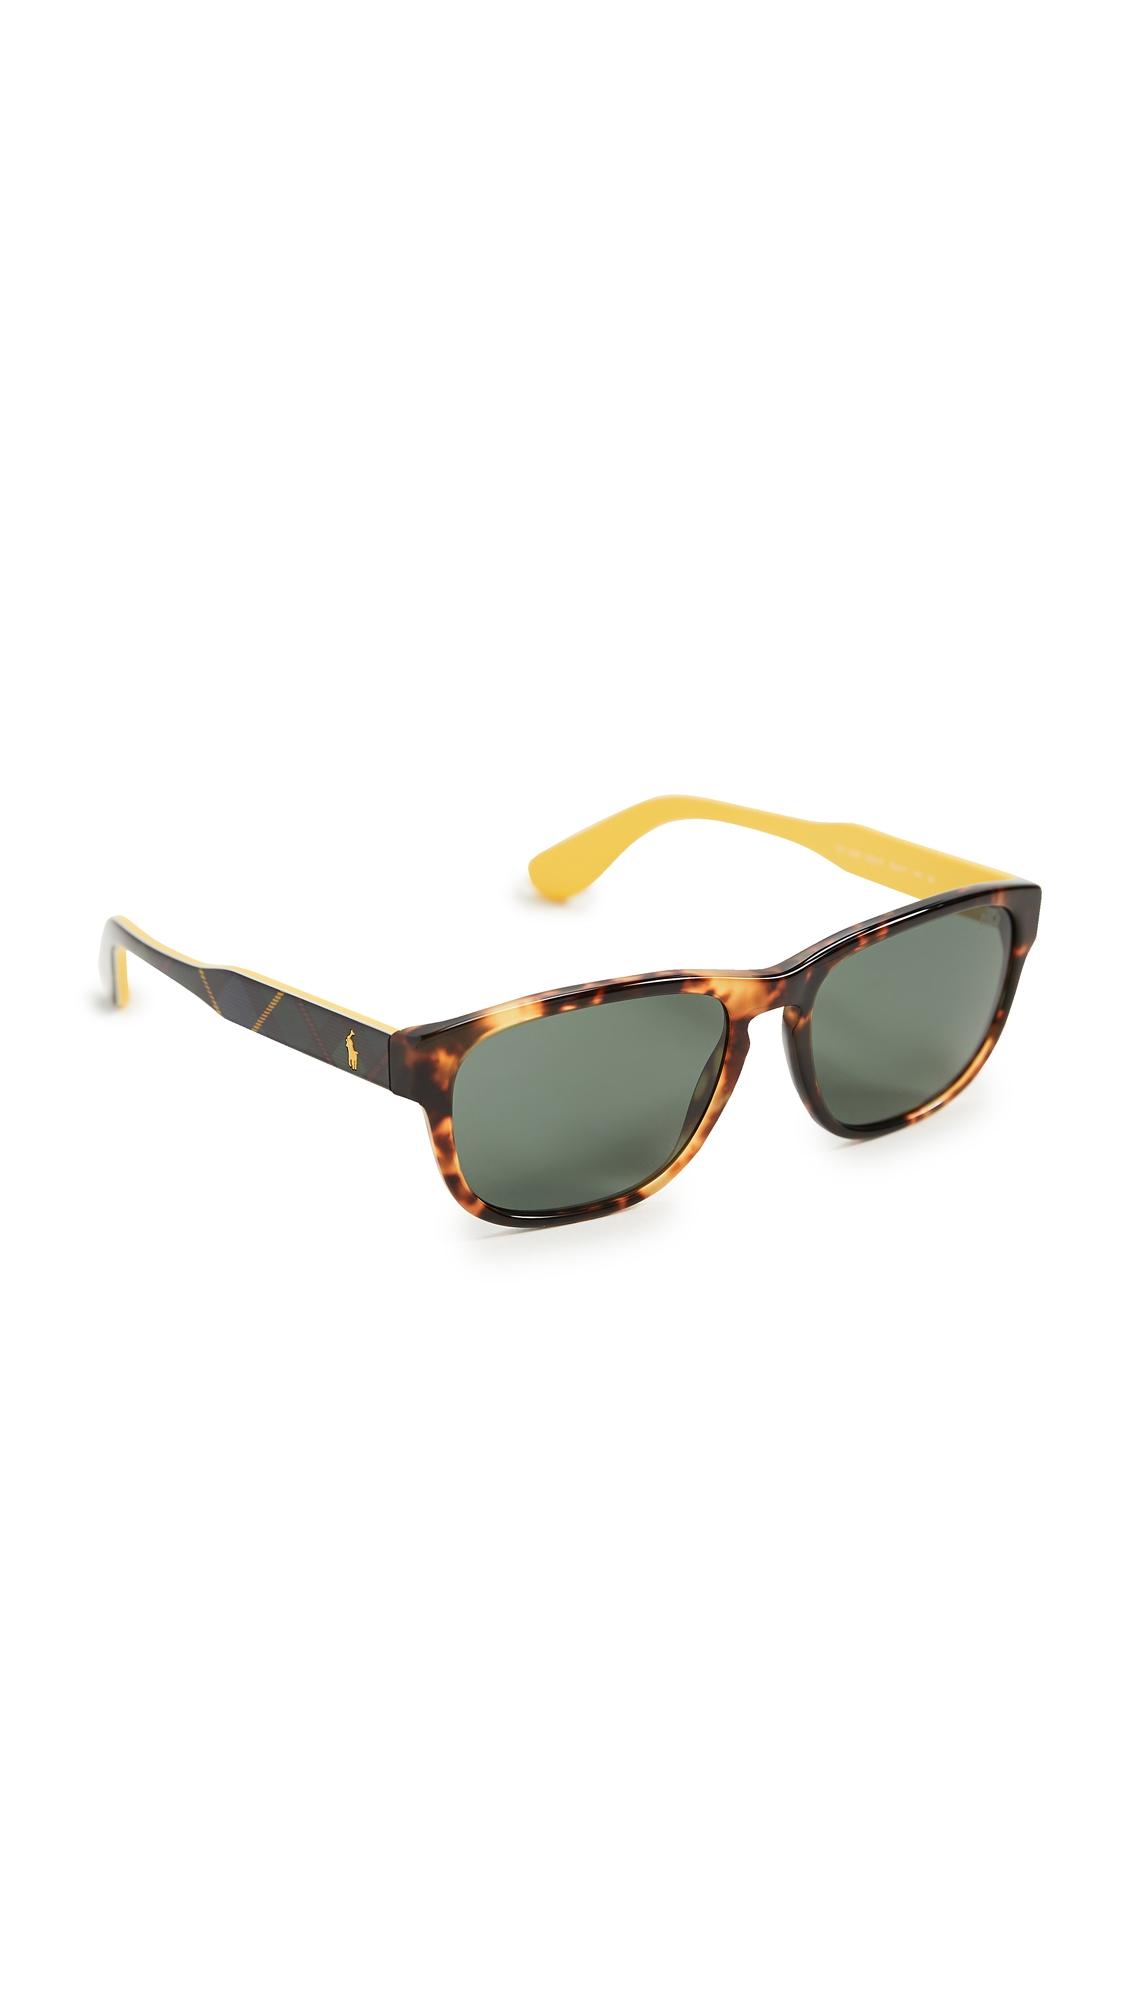 Polo Ralph Lauren 0ph4158-sunglasses In Shiny New Jerry Tortoise